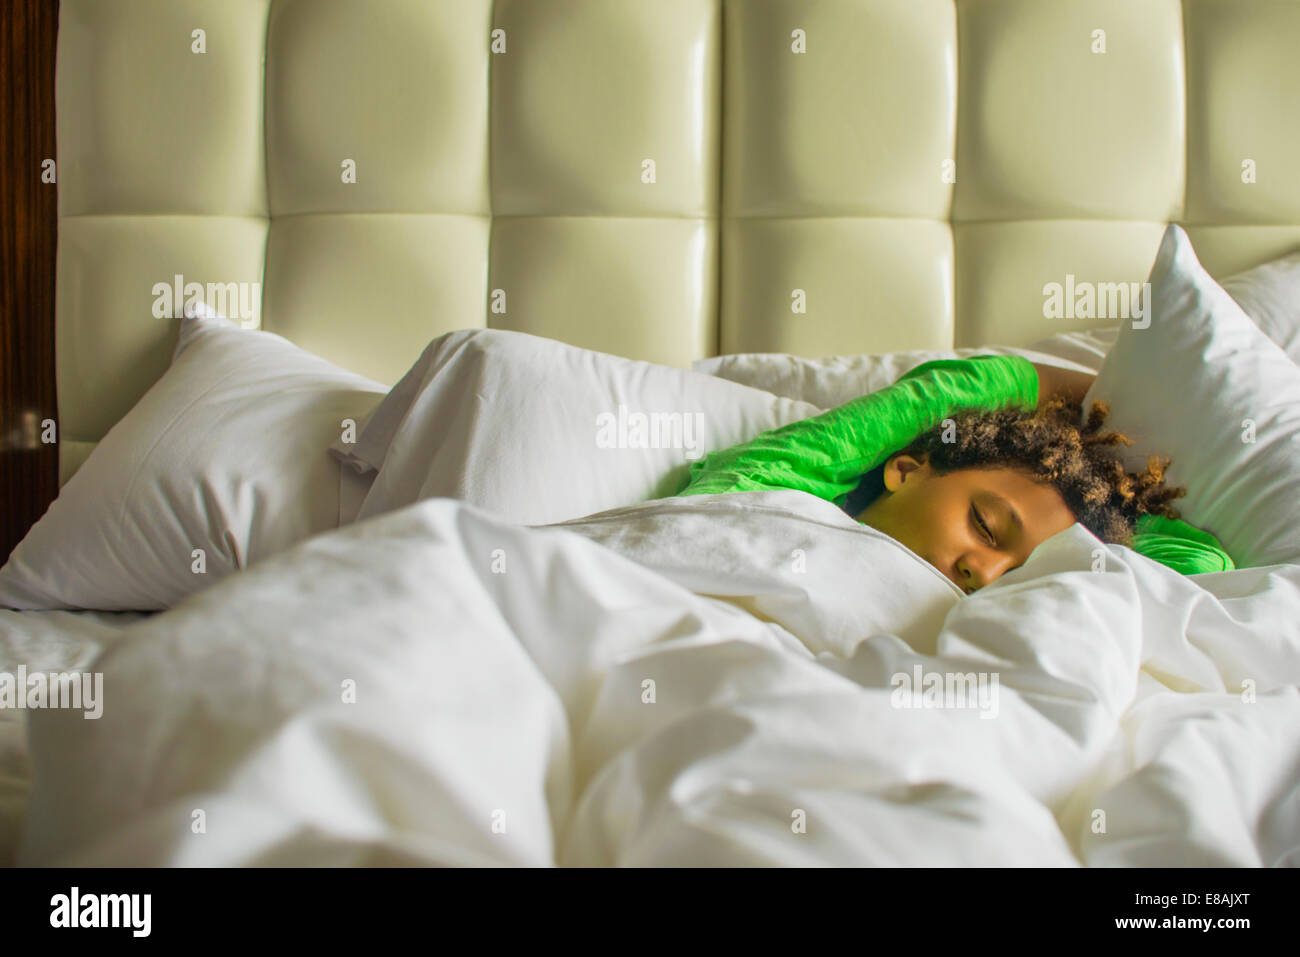 Boy lying asleep in bed - Stock Image